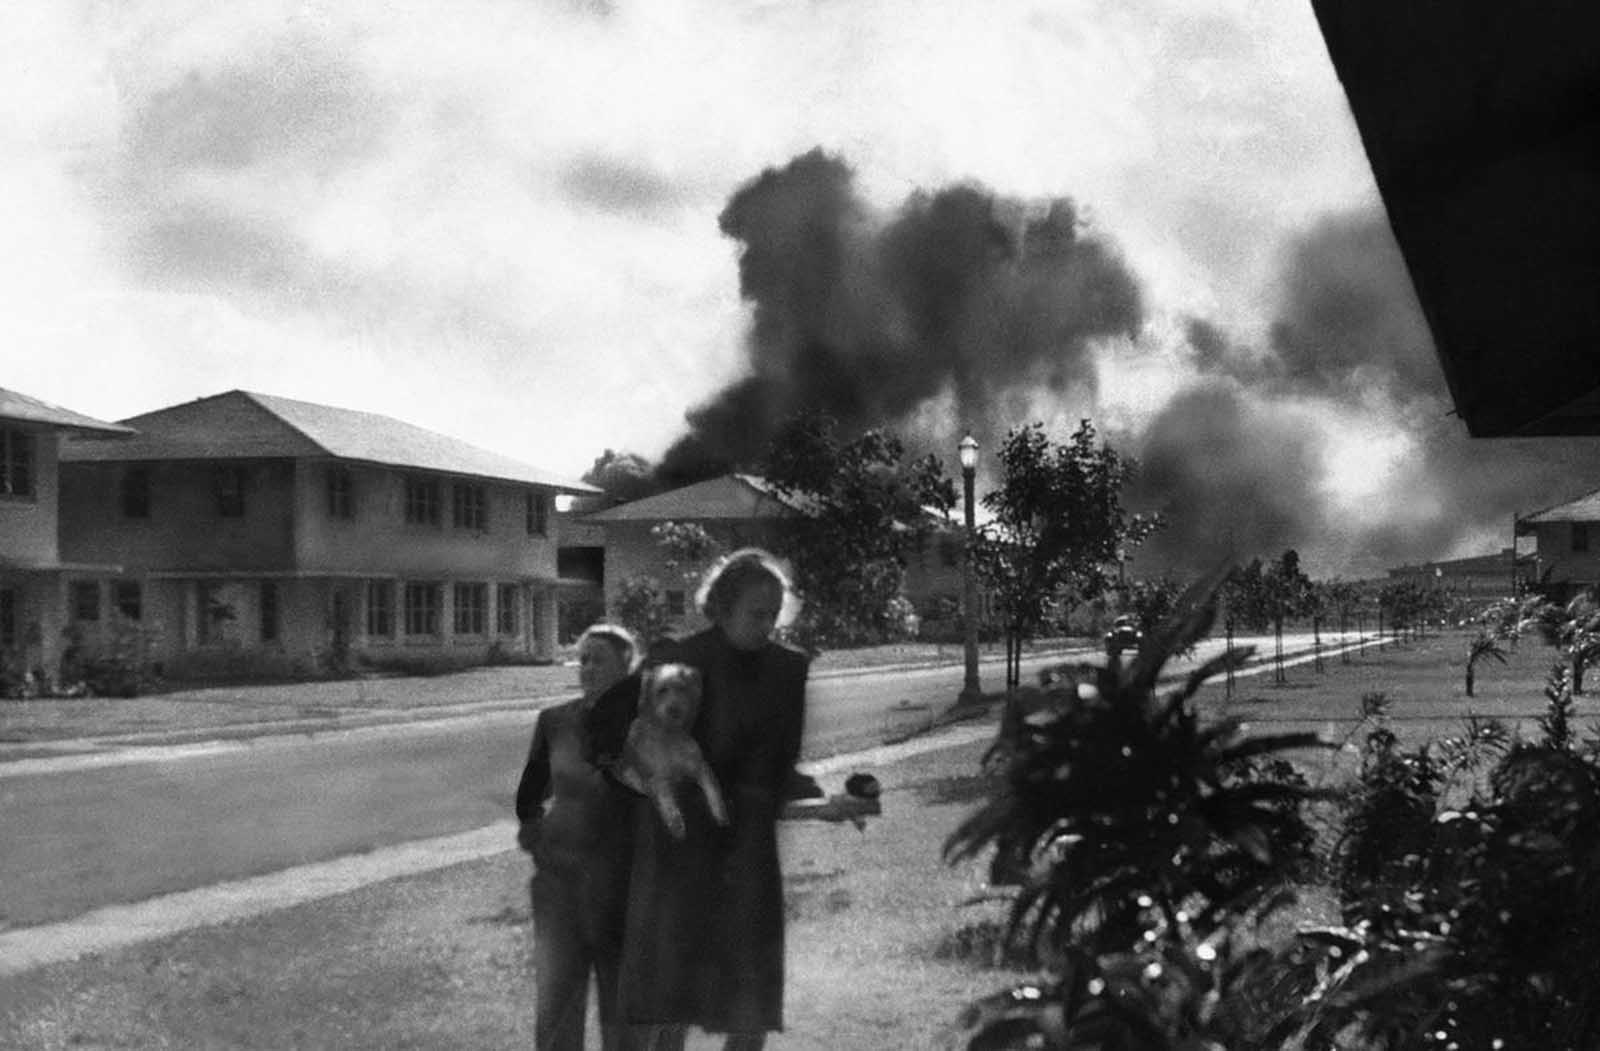 Officers' wives, investigating explosions and seeing a smoke pall in distance on December 7, 1941, heard neighbor Mary Naiden, then an Army hostess who took this picture, exclaim